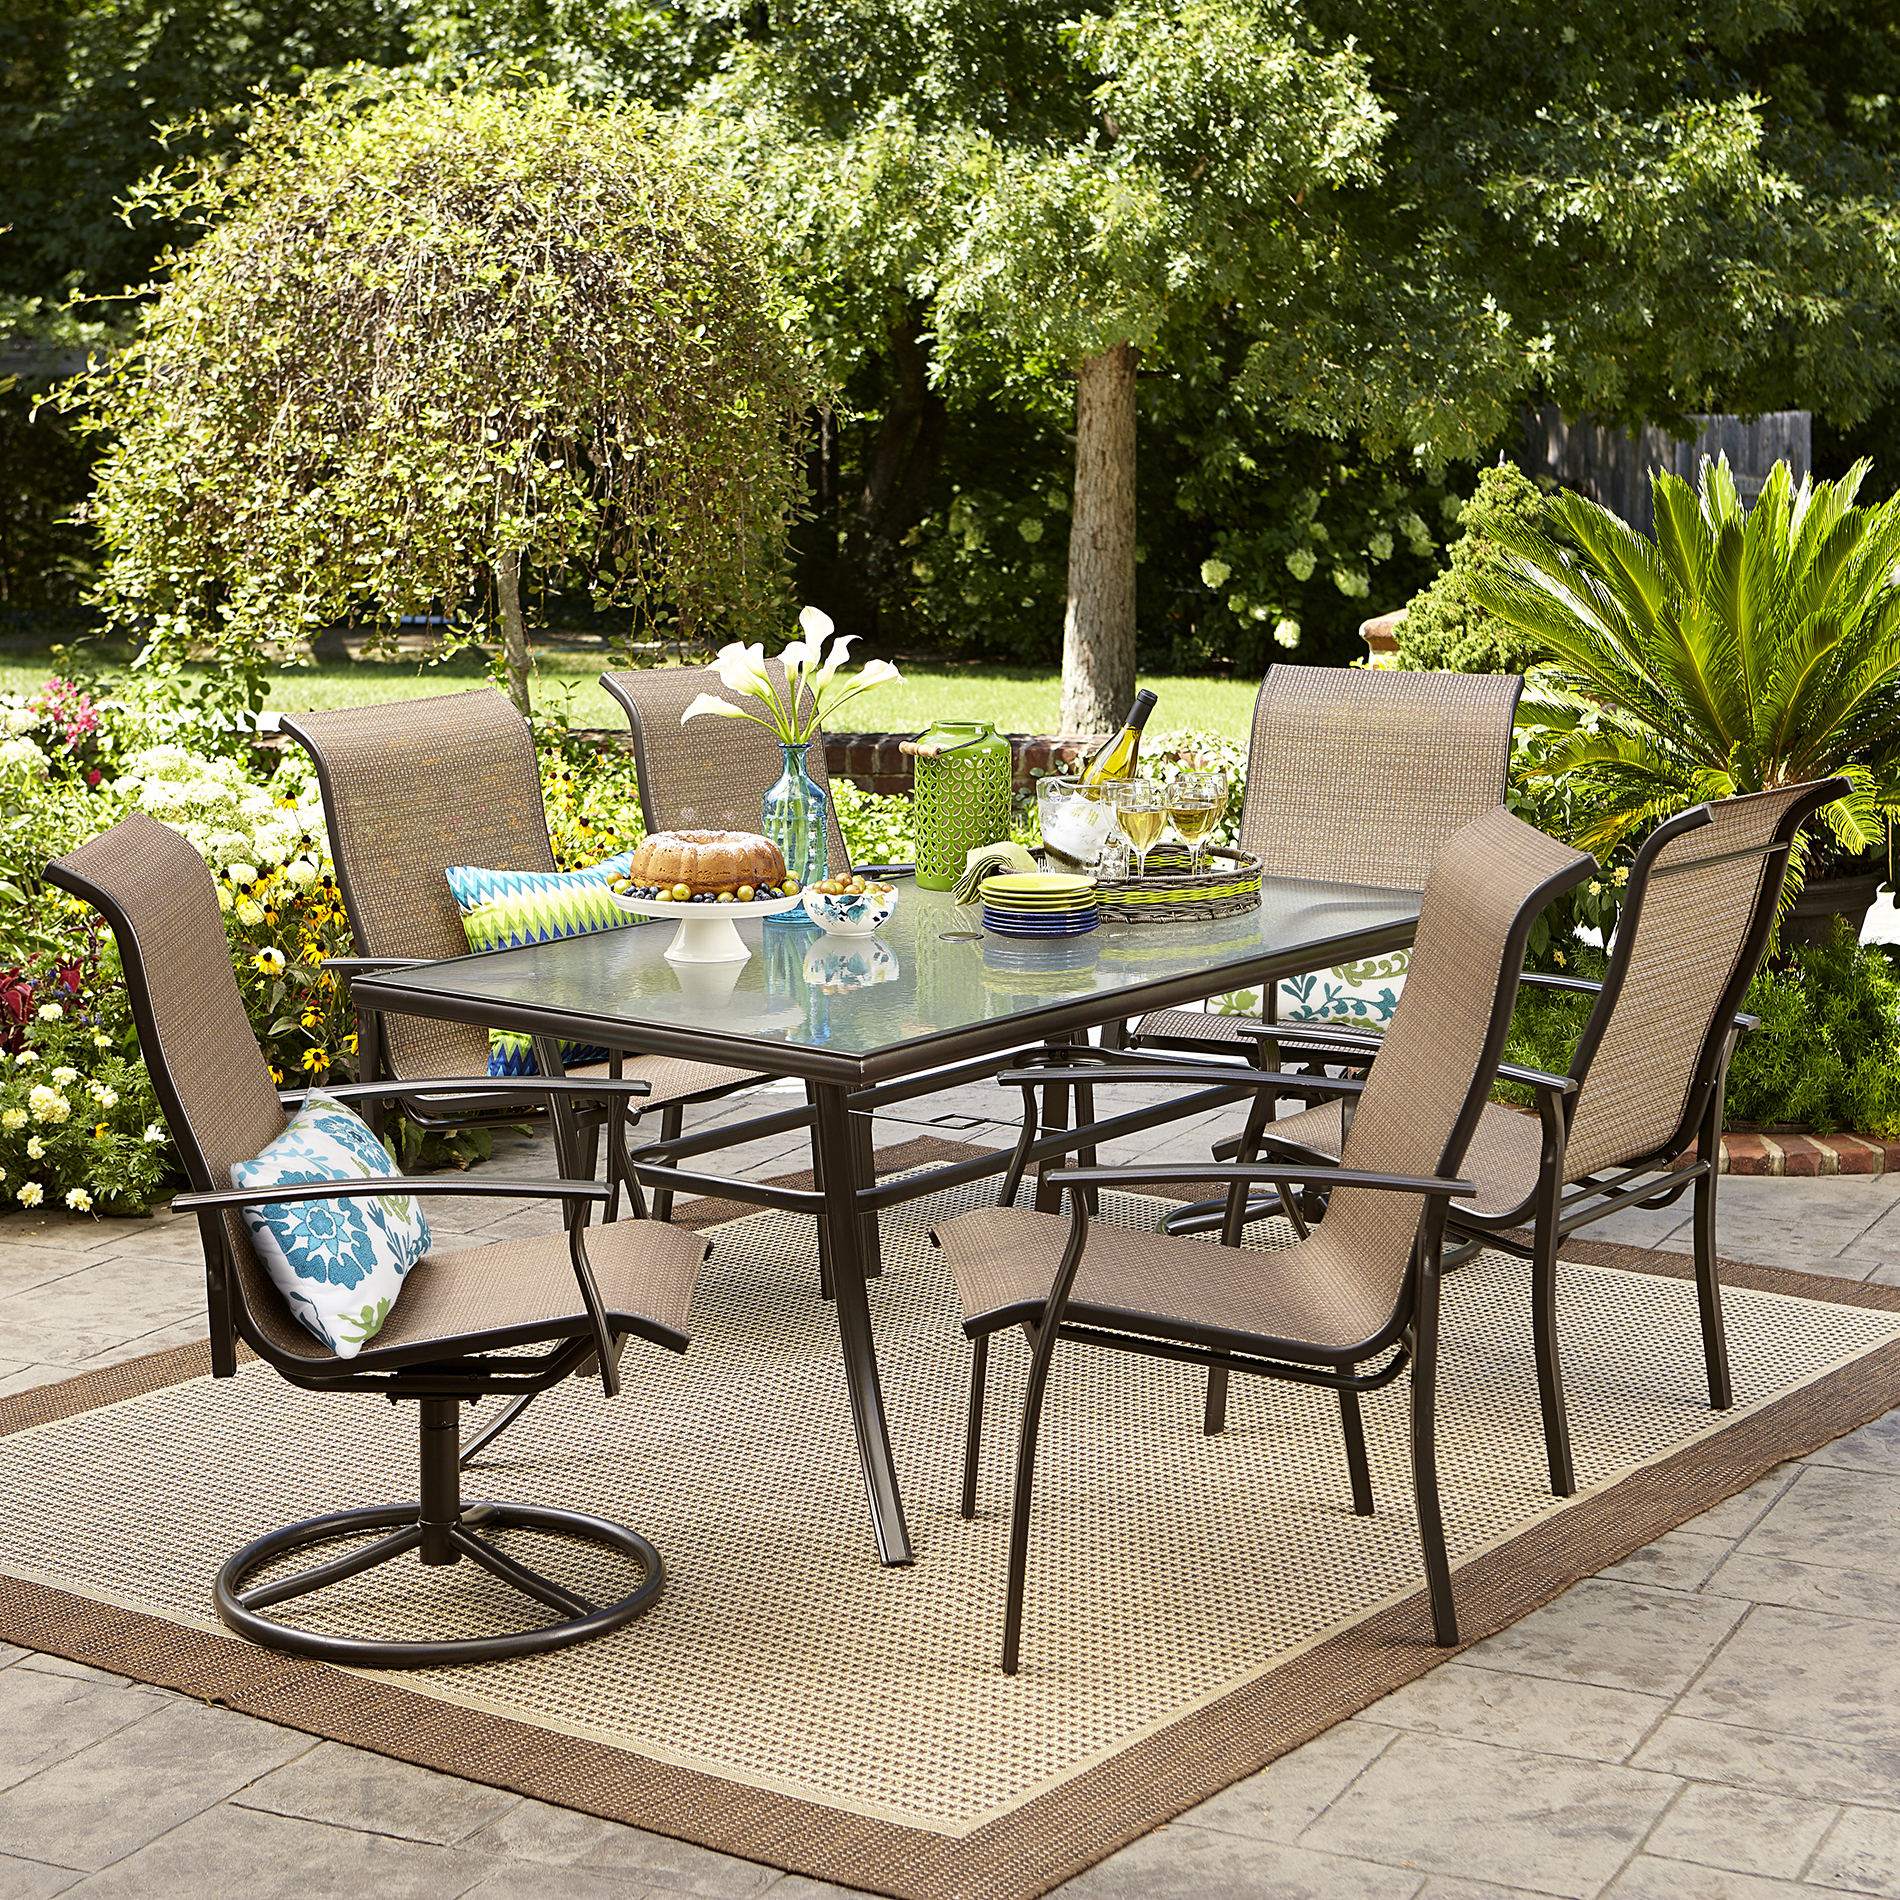 How To Pick The Best Outdoor Dining Set Outdoor Dining Set Garden Oasis Harrison 7 Piece Dining Set Zqaqnxf Patio Patio Set Outdoor Patio Set